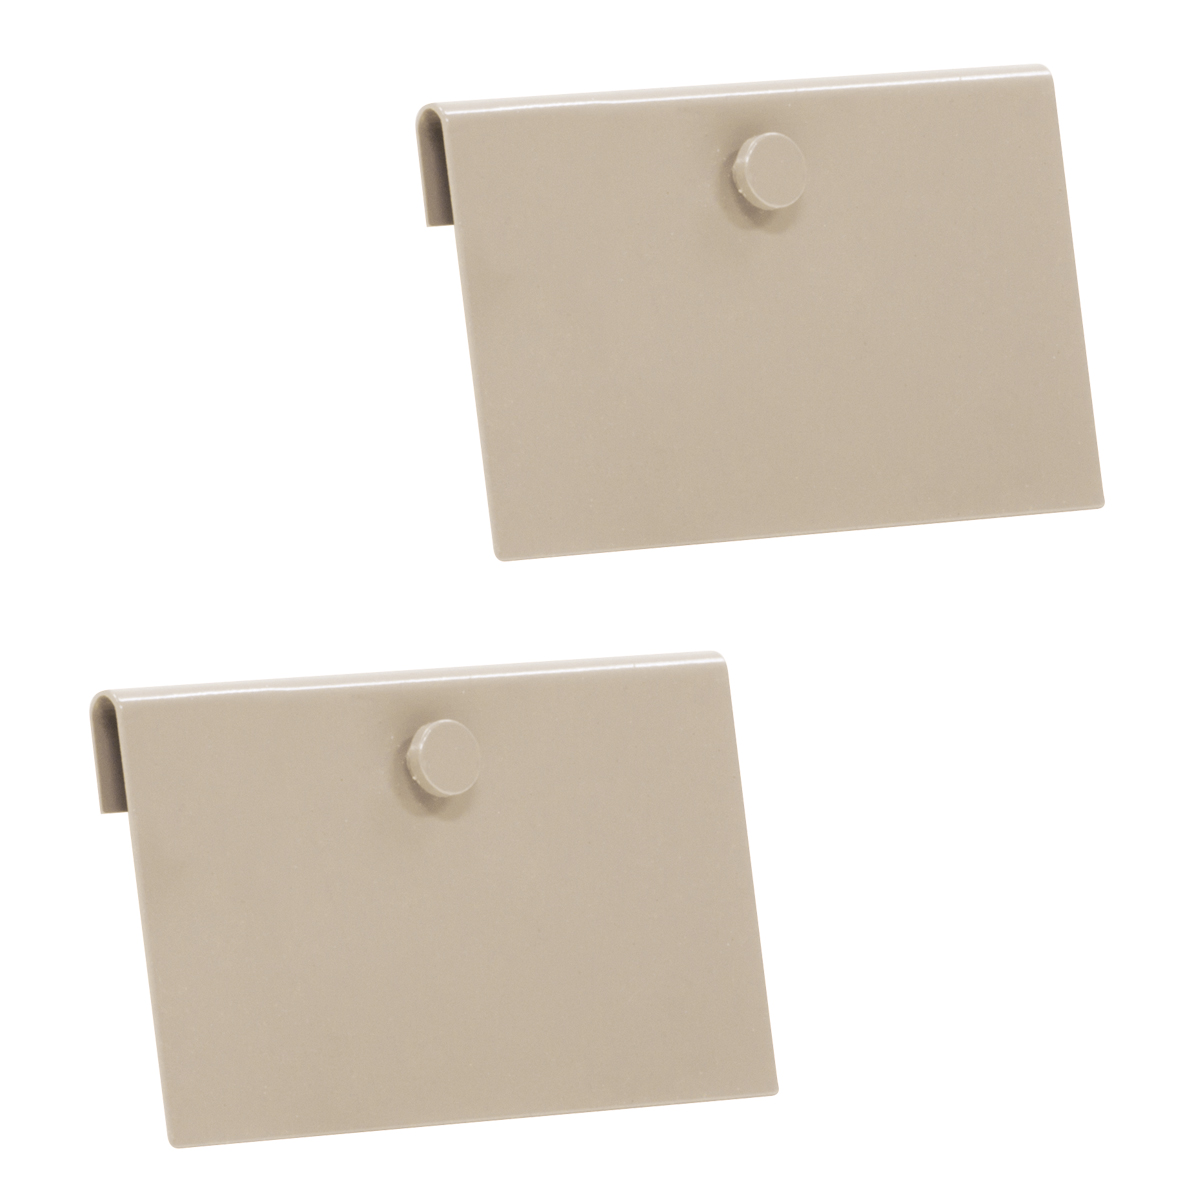 TiltView Hanging Clip, 2 Pack, Beige (TVCLIP).  This item sold in carton quantities of 1.